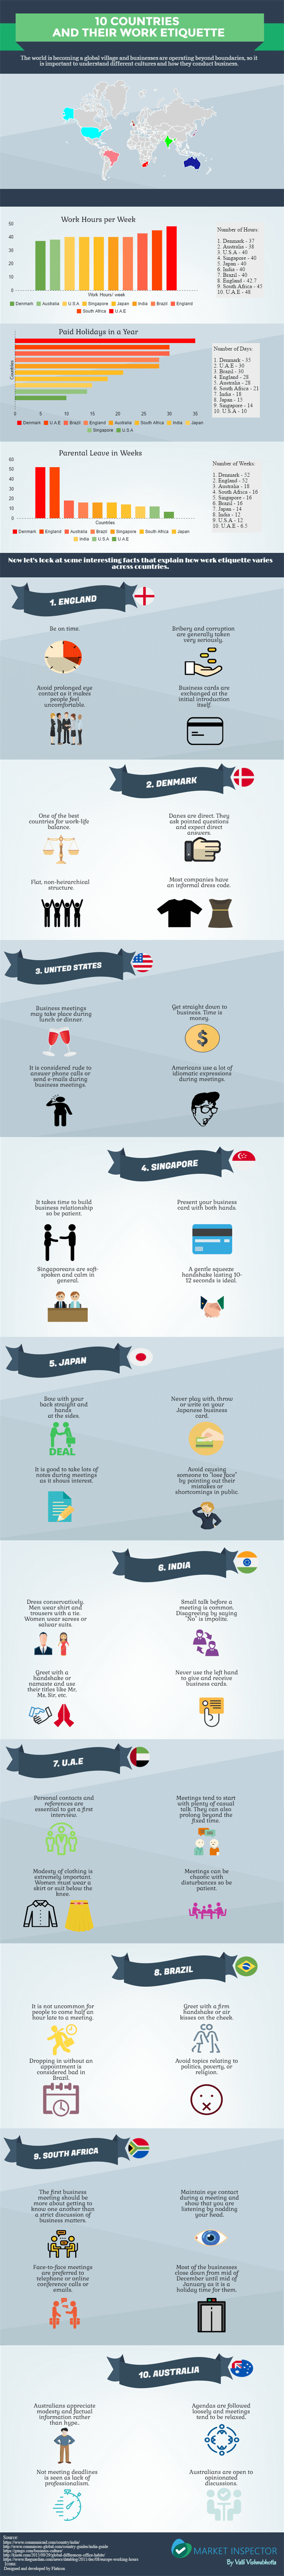 10 Countries And Their Work Etiquette